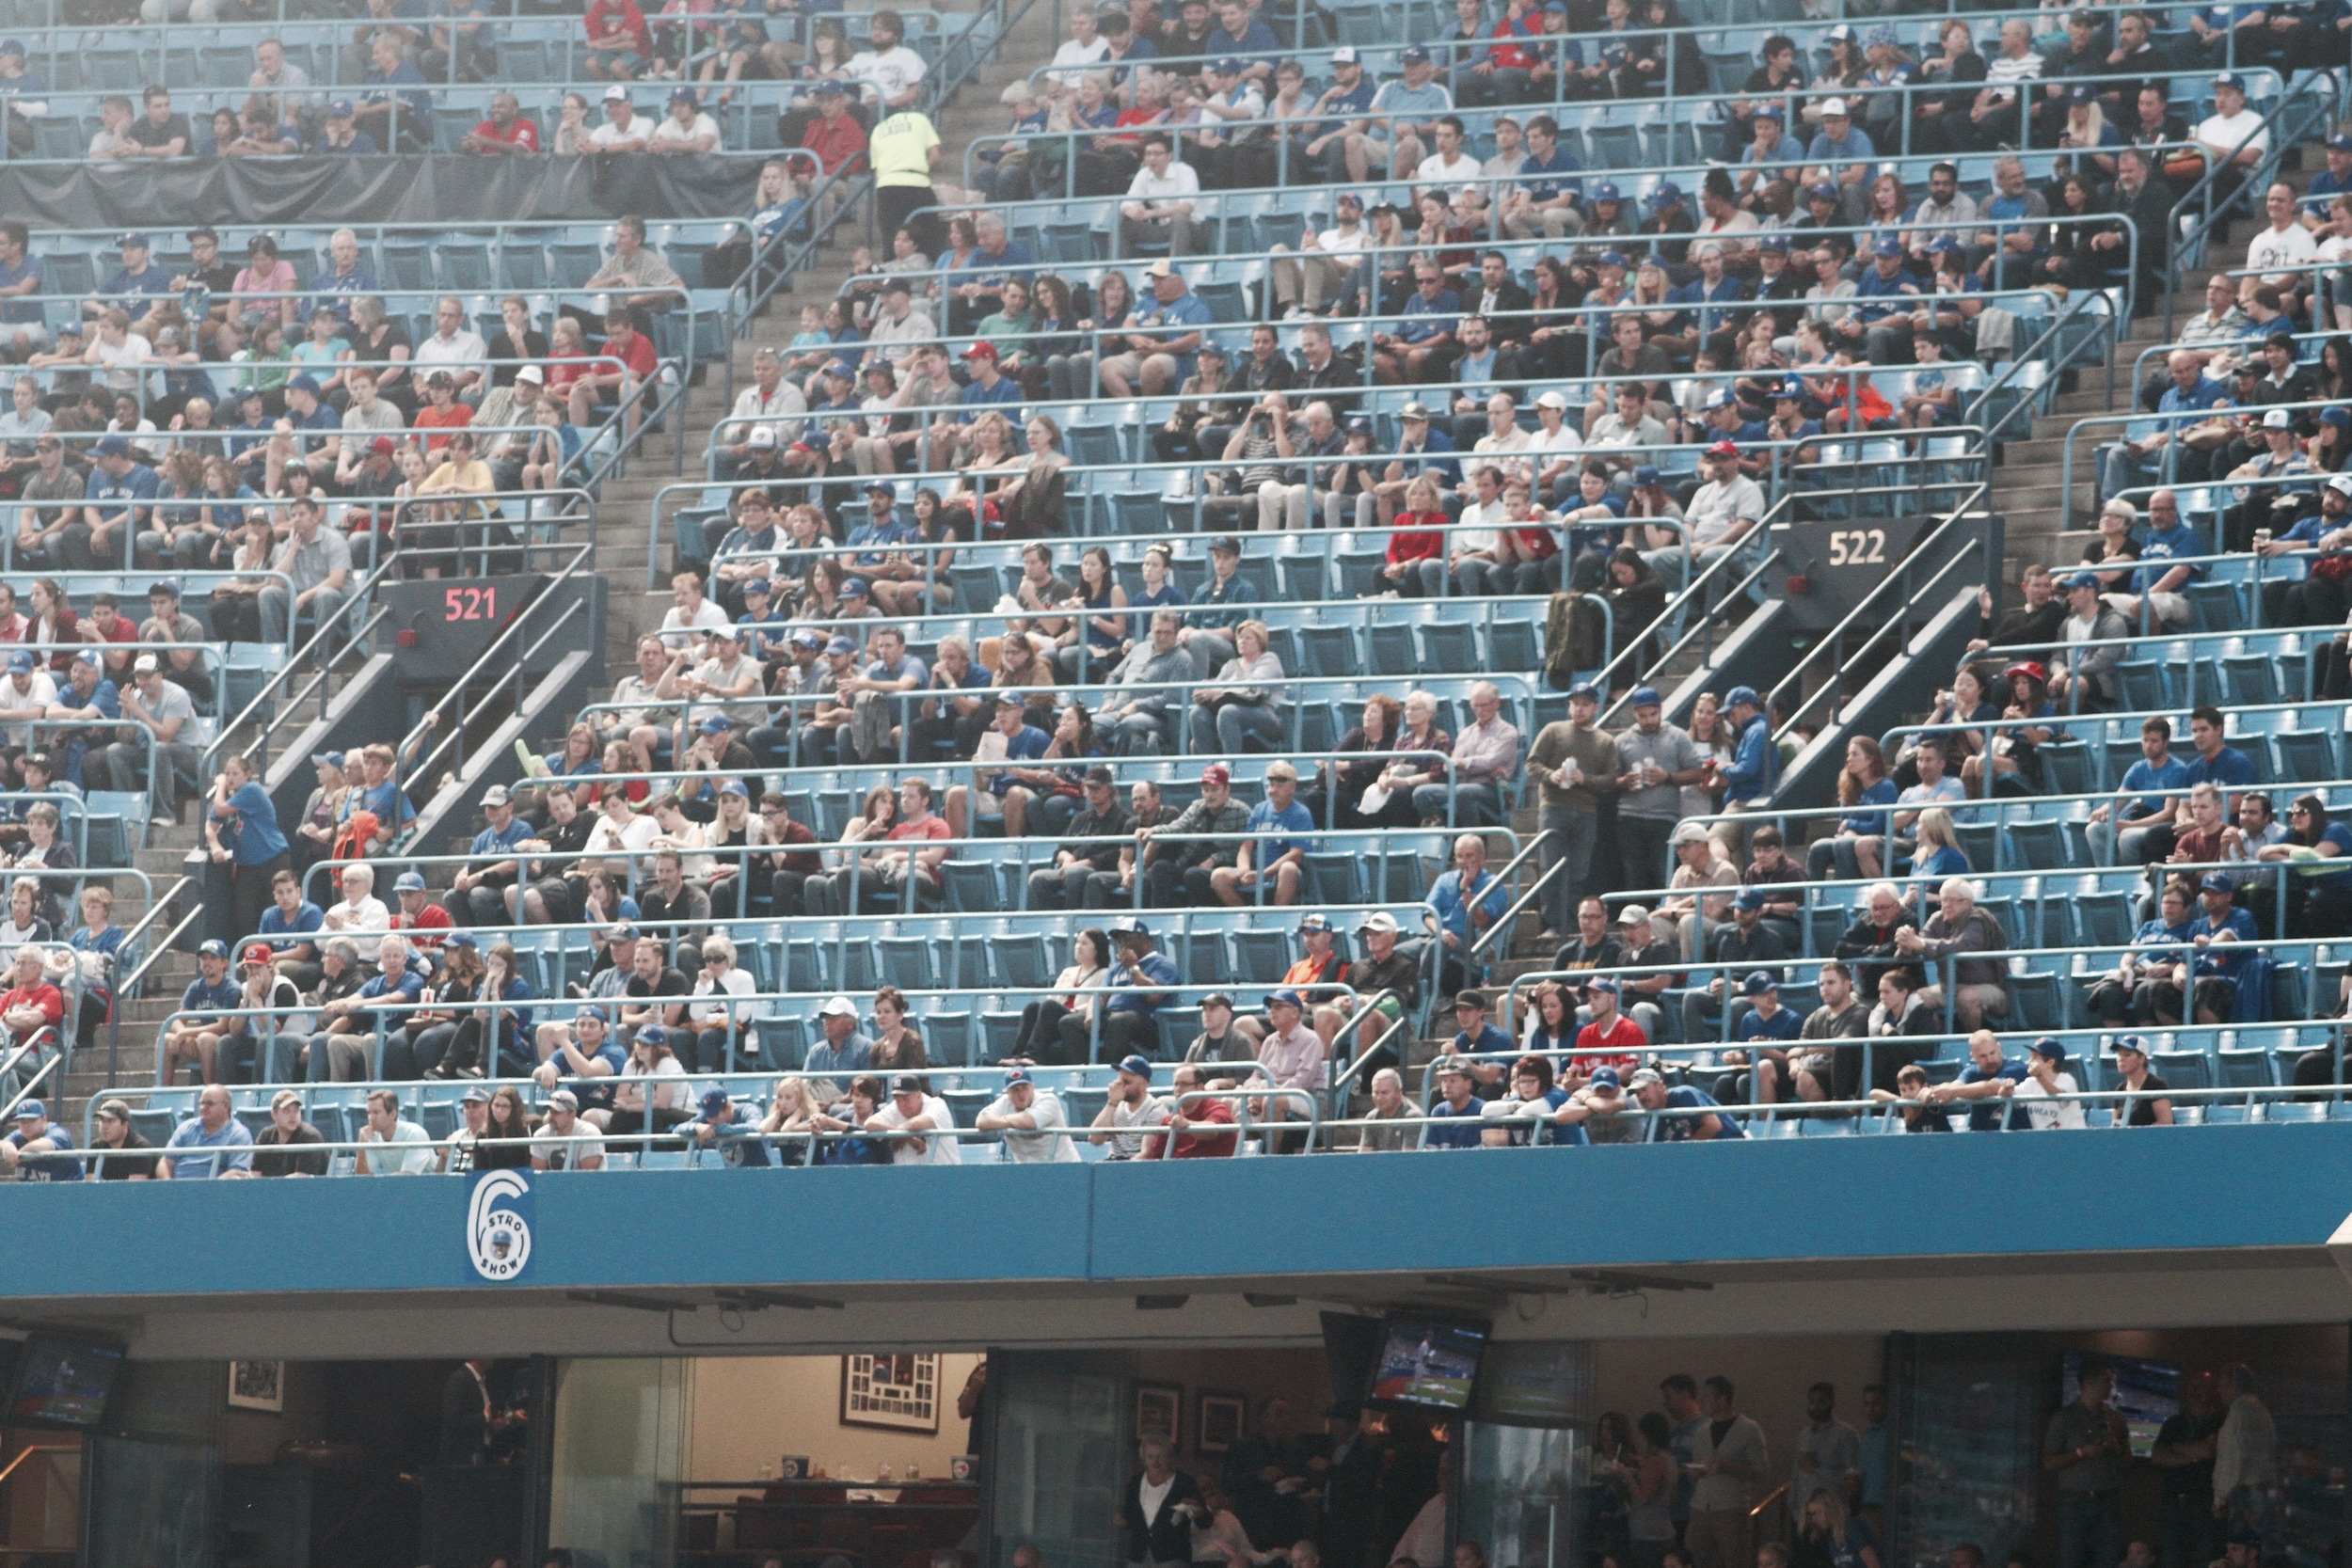 Don't expect too many empty seats at the Rogers Centre in 2016. (Photo: Jeremy King)